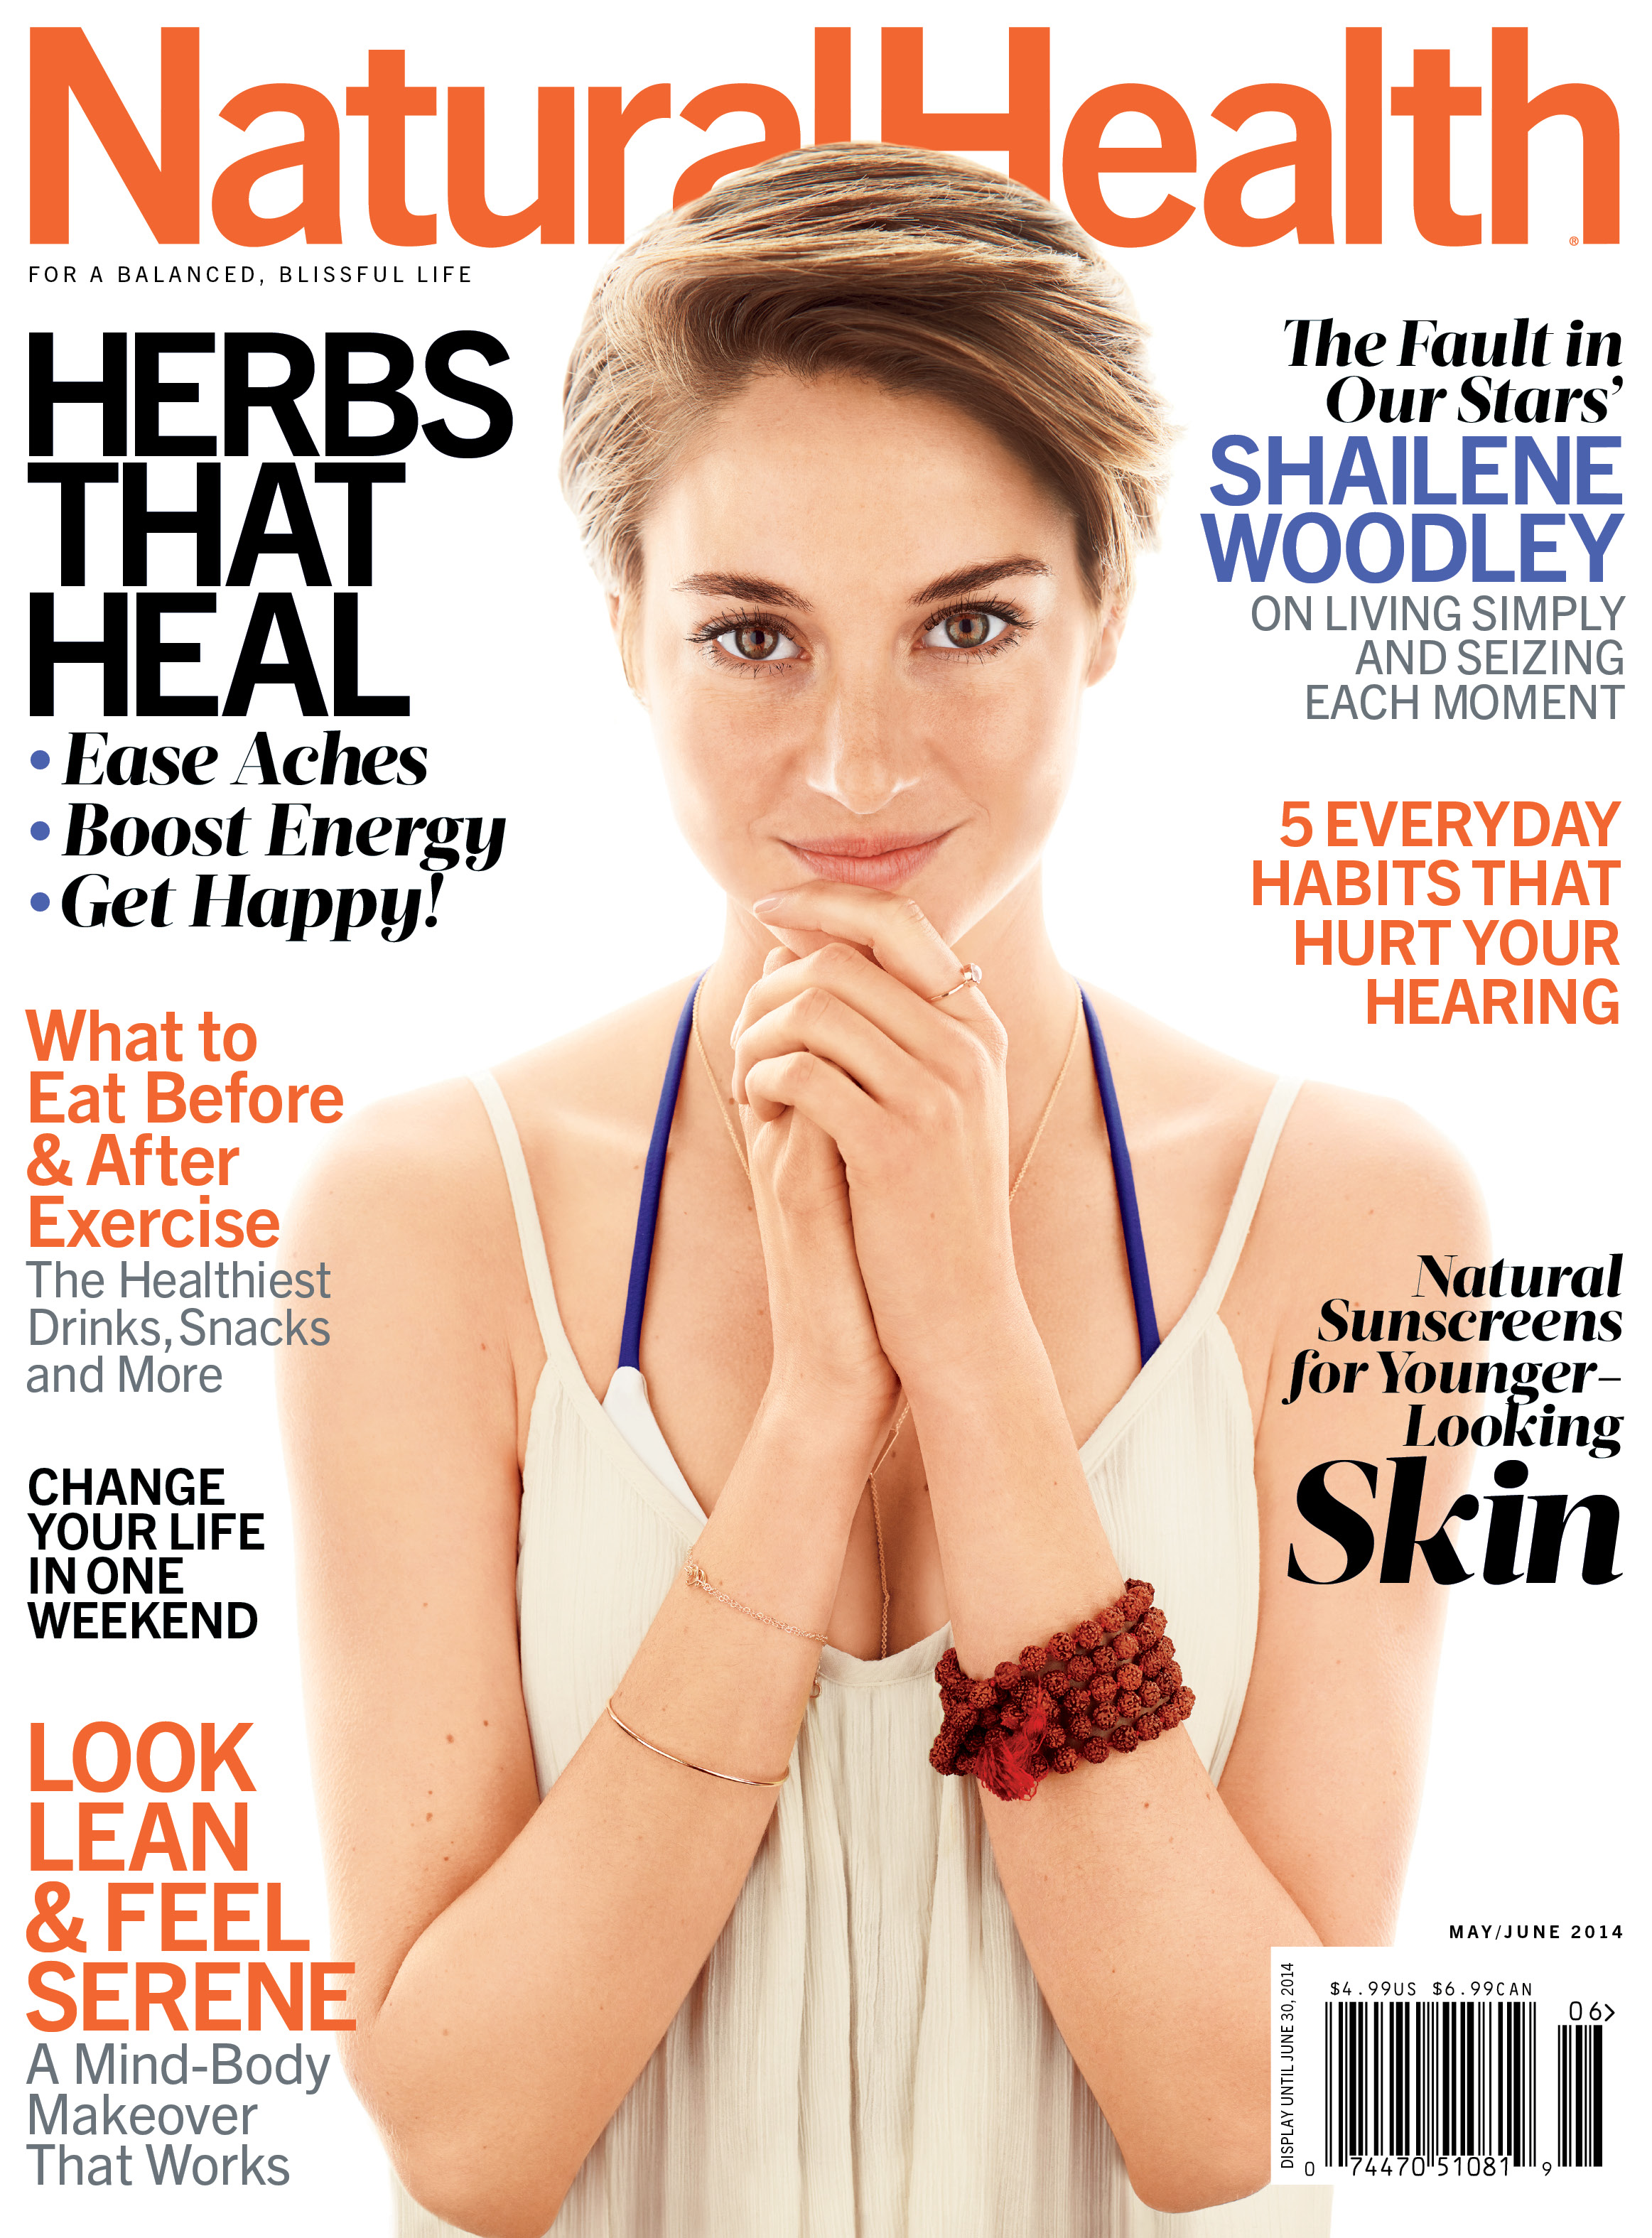 Shailene Woodley reveals why living sustainably is actually awesome